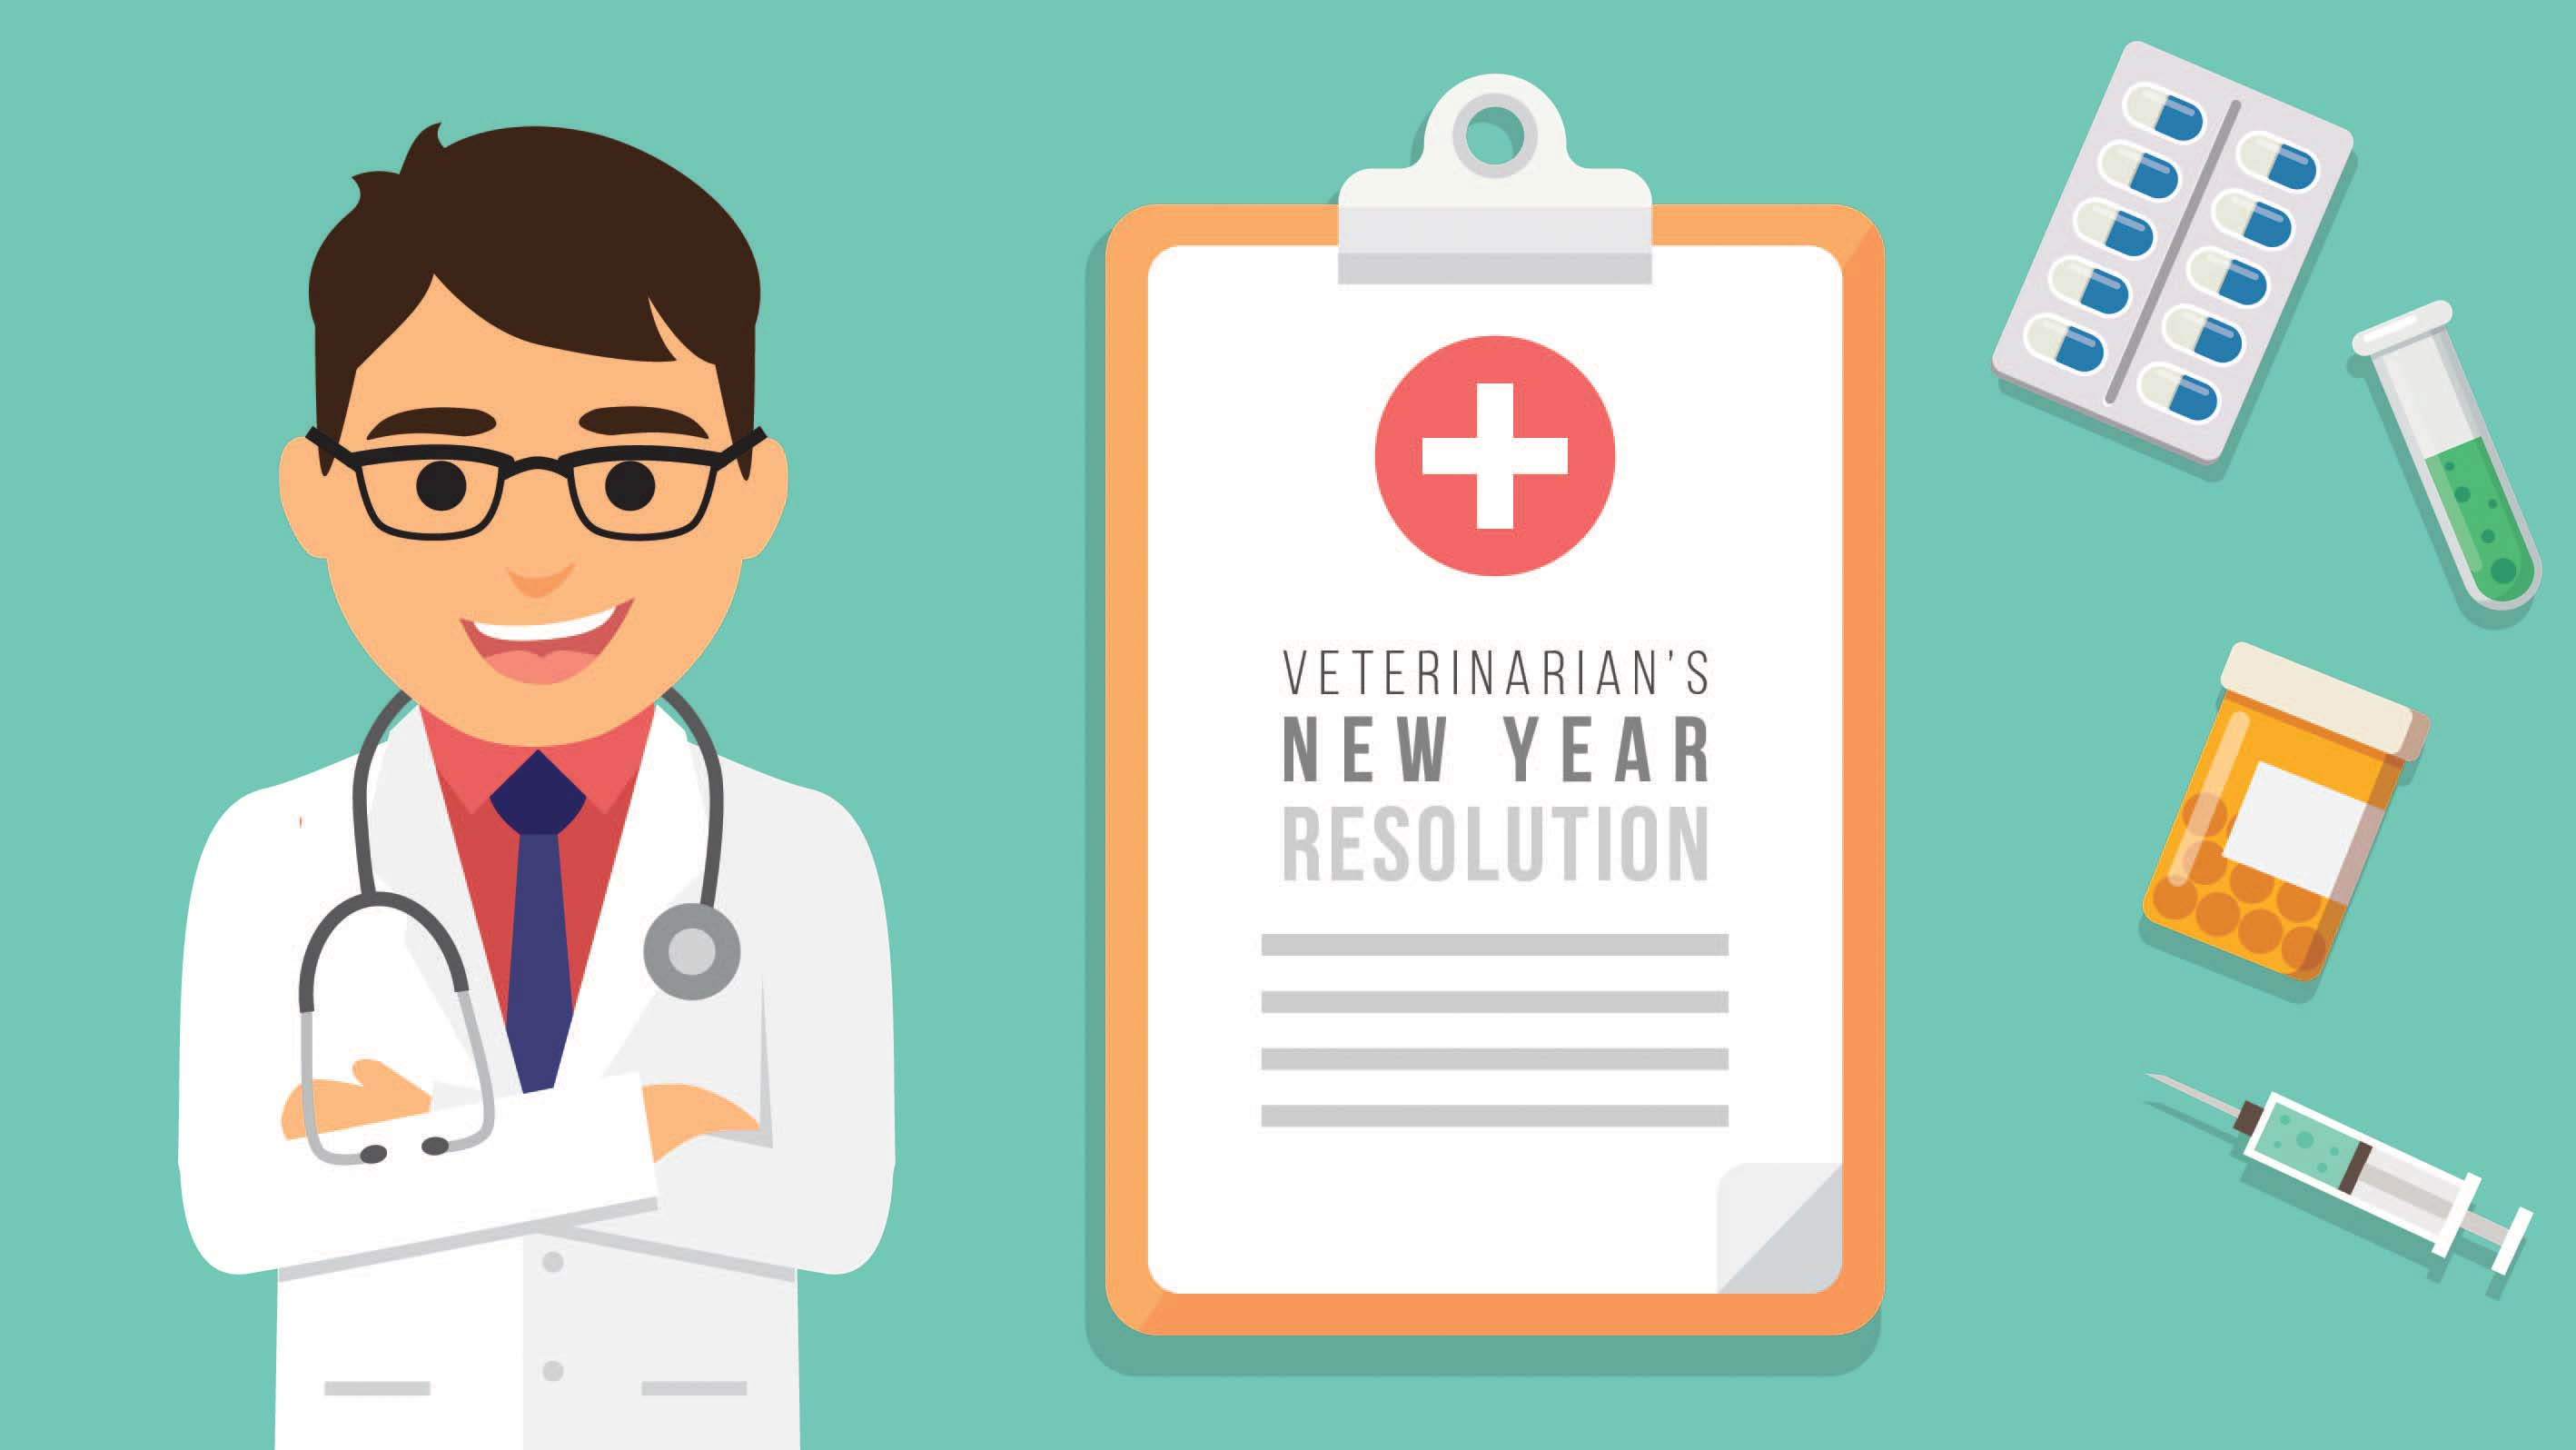 Veterinarians' New Year resolutions - Baby Steps towards better Veterinary Practice Management